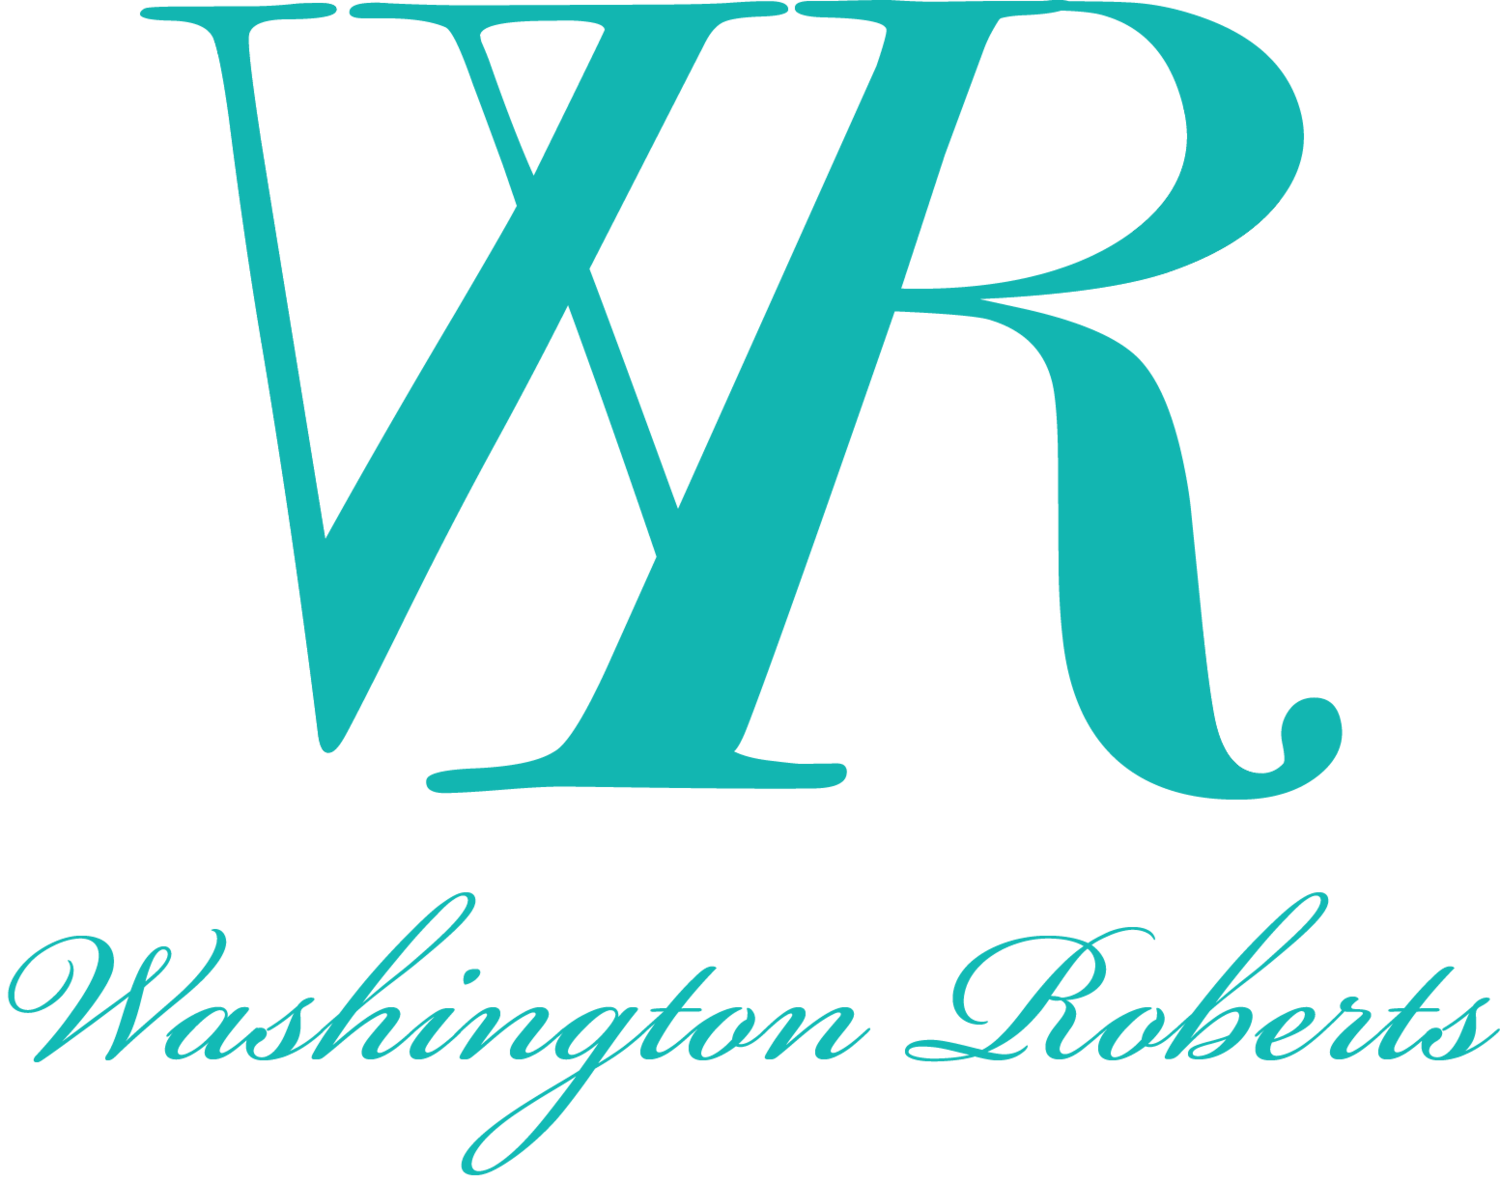 WASHINGTON ROBERTS